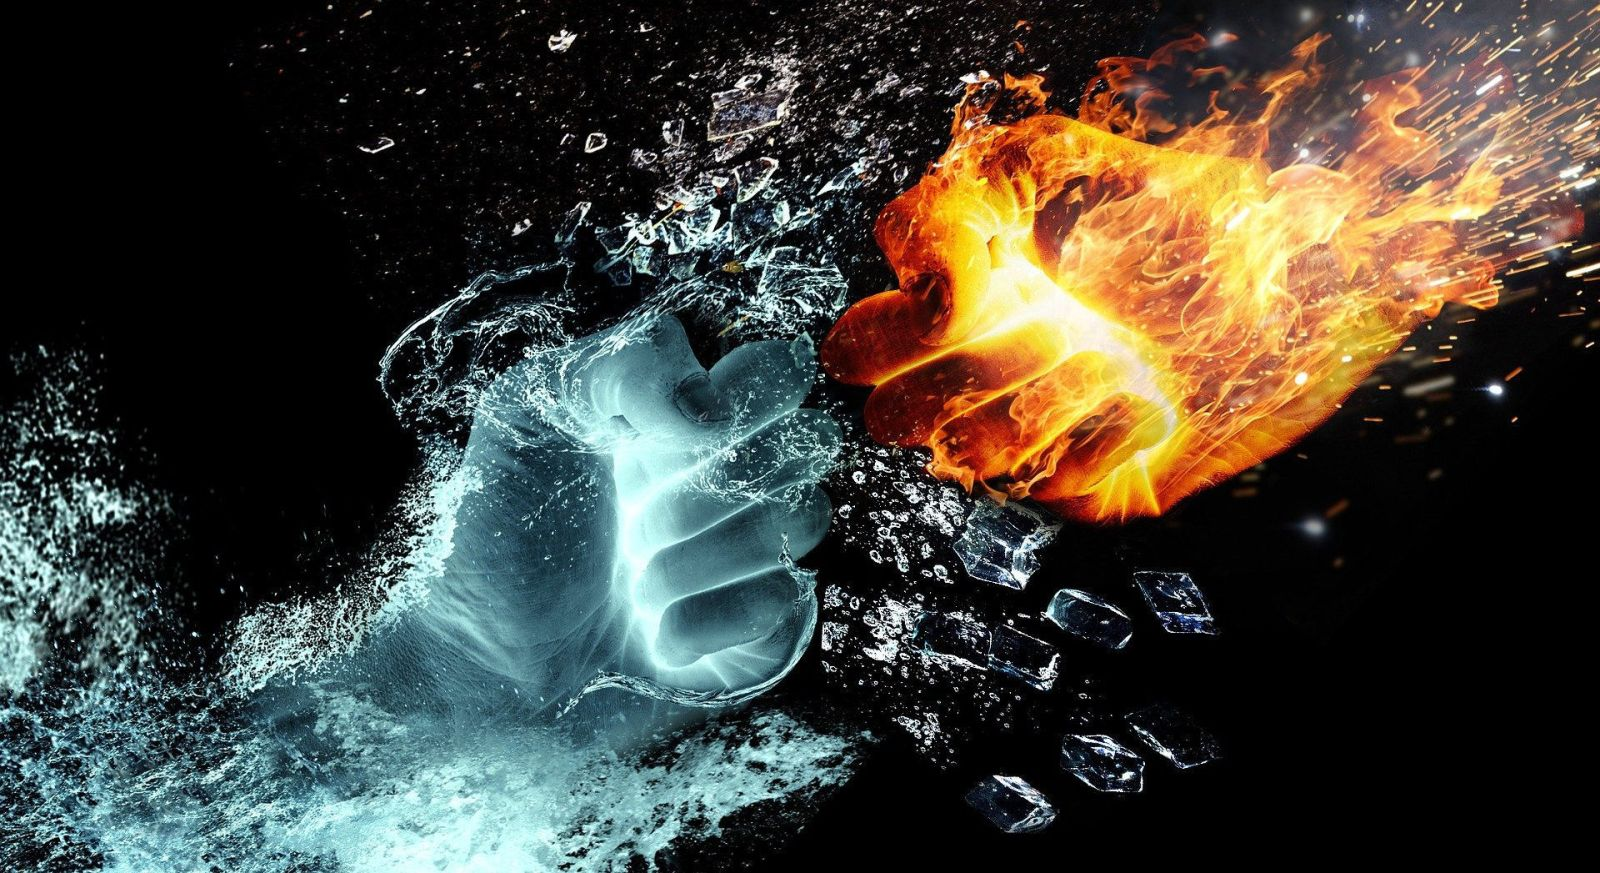 Fists of fire and water